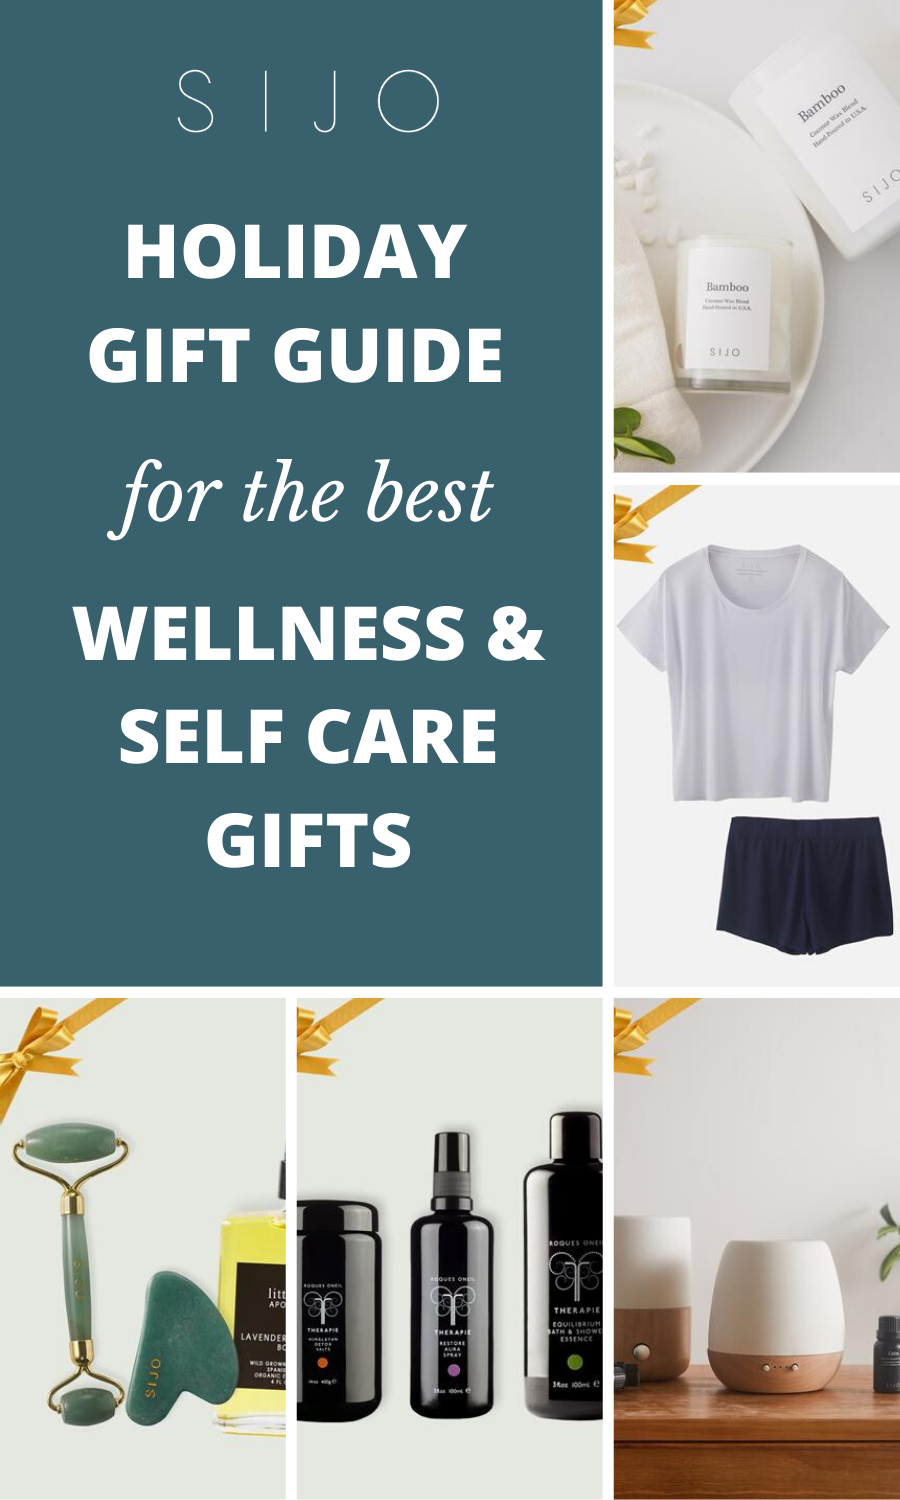 Introducing The Sijo Holiday Gift Guide Wellness Gifts Gift Guide Holiday Gift Guide